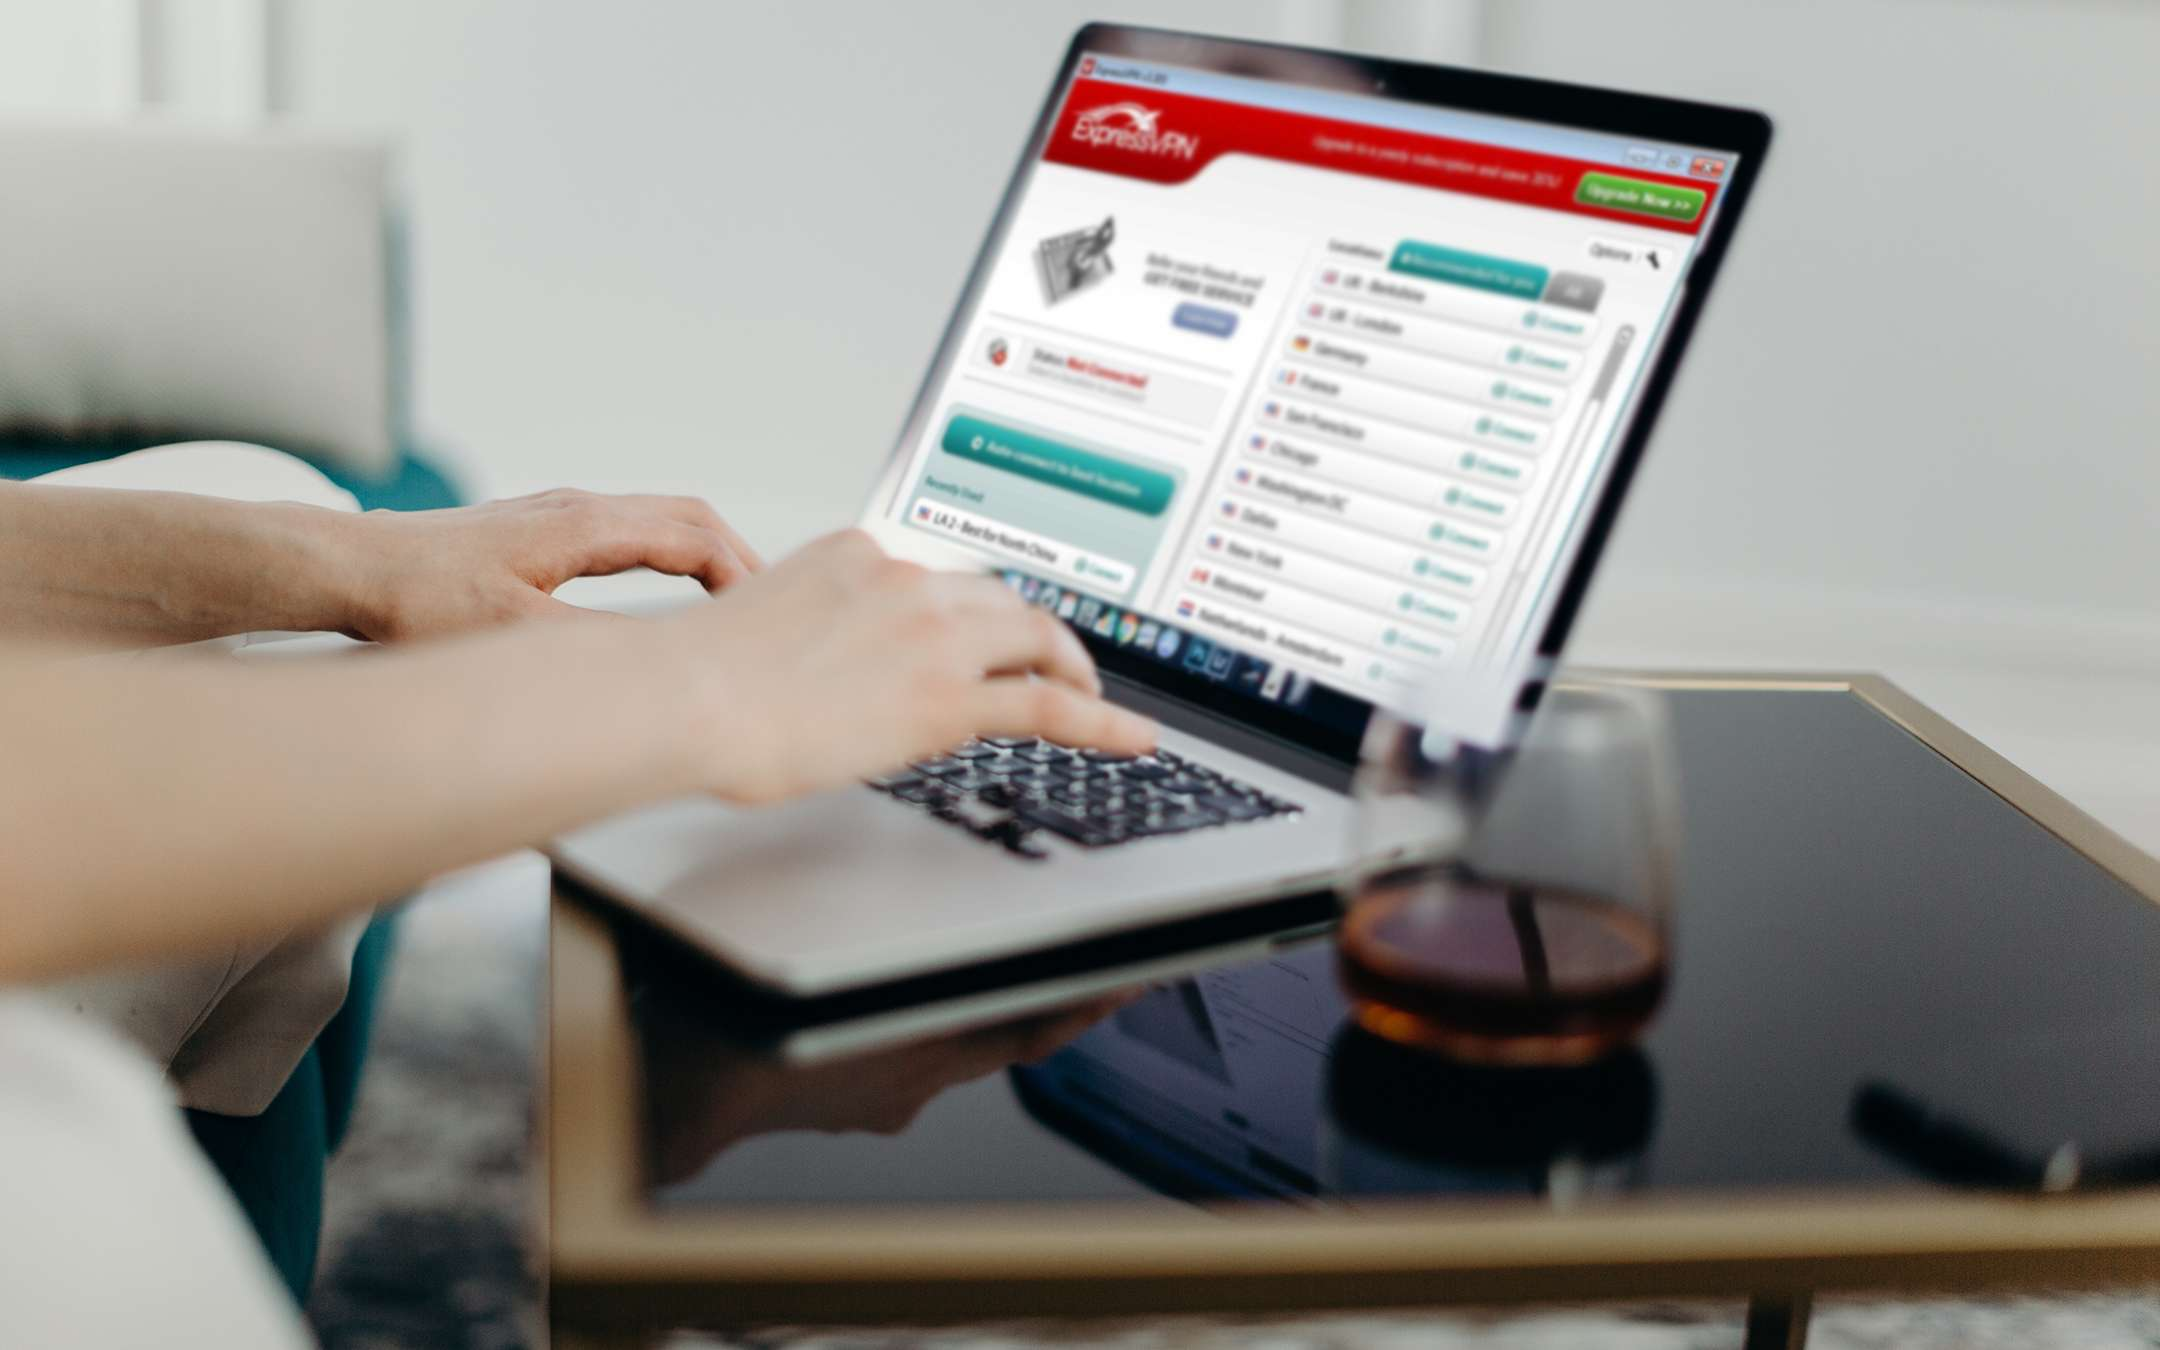 ExpressVPN: Review, Features, and Pricing